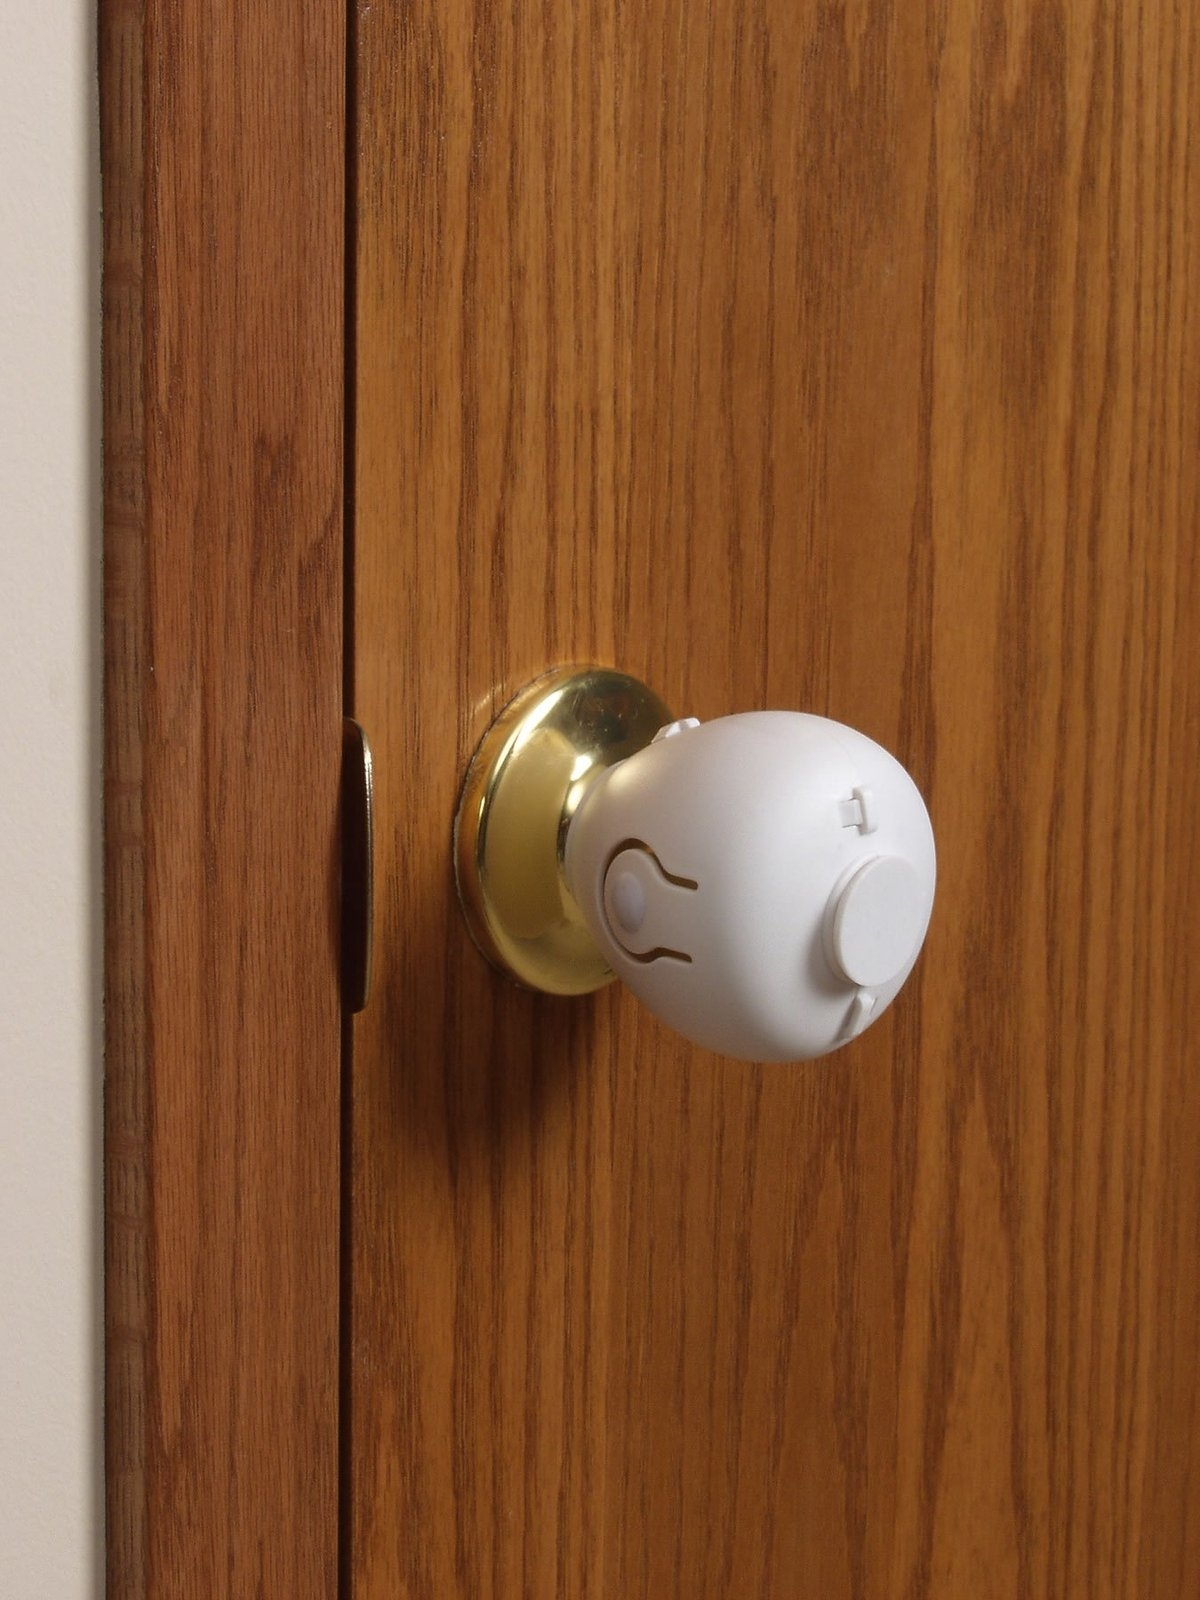 Rubber Door Knob Covers Child Safety